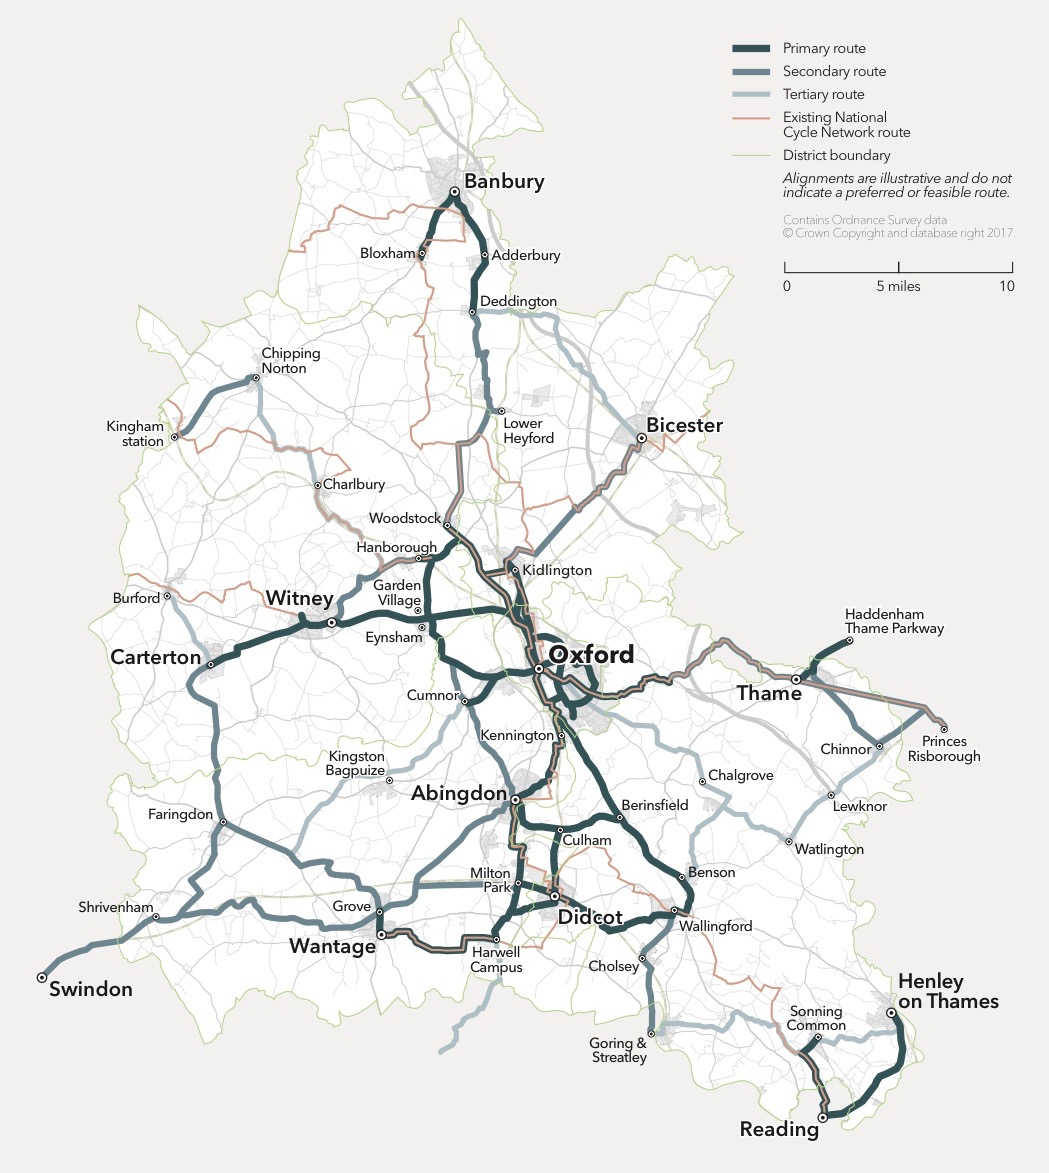 Strategic Cycle Network for Oxfordshire